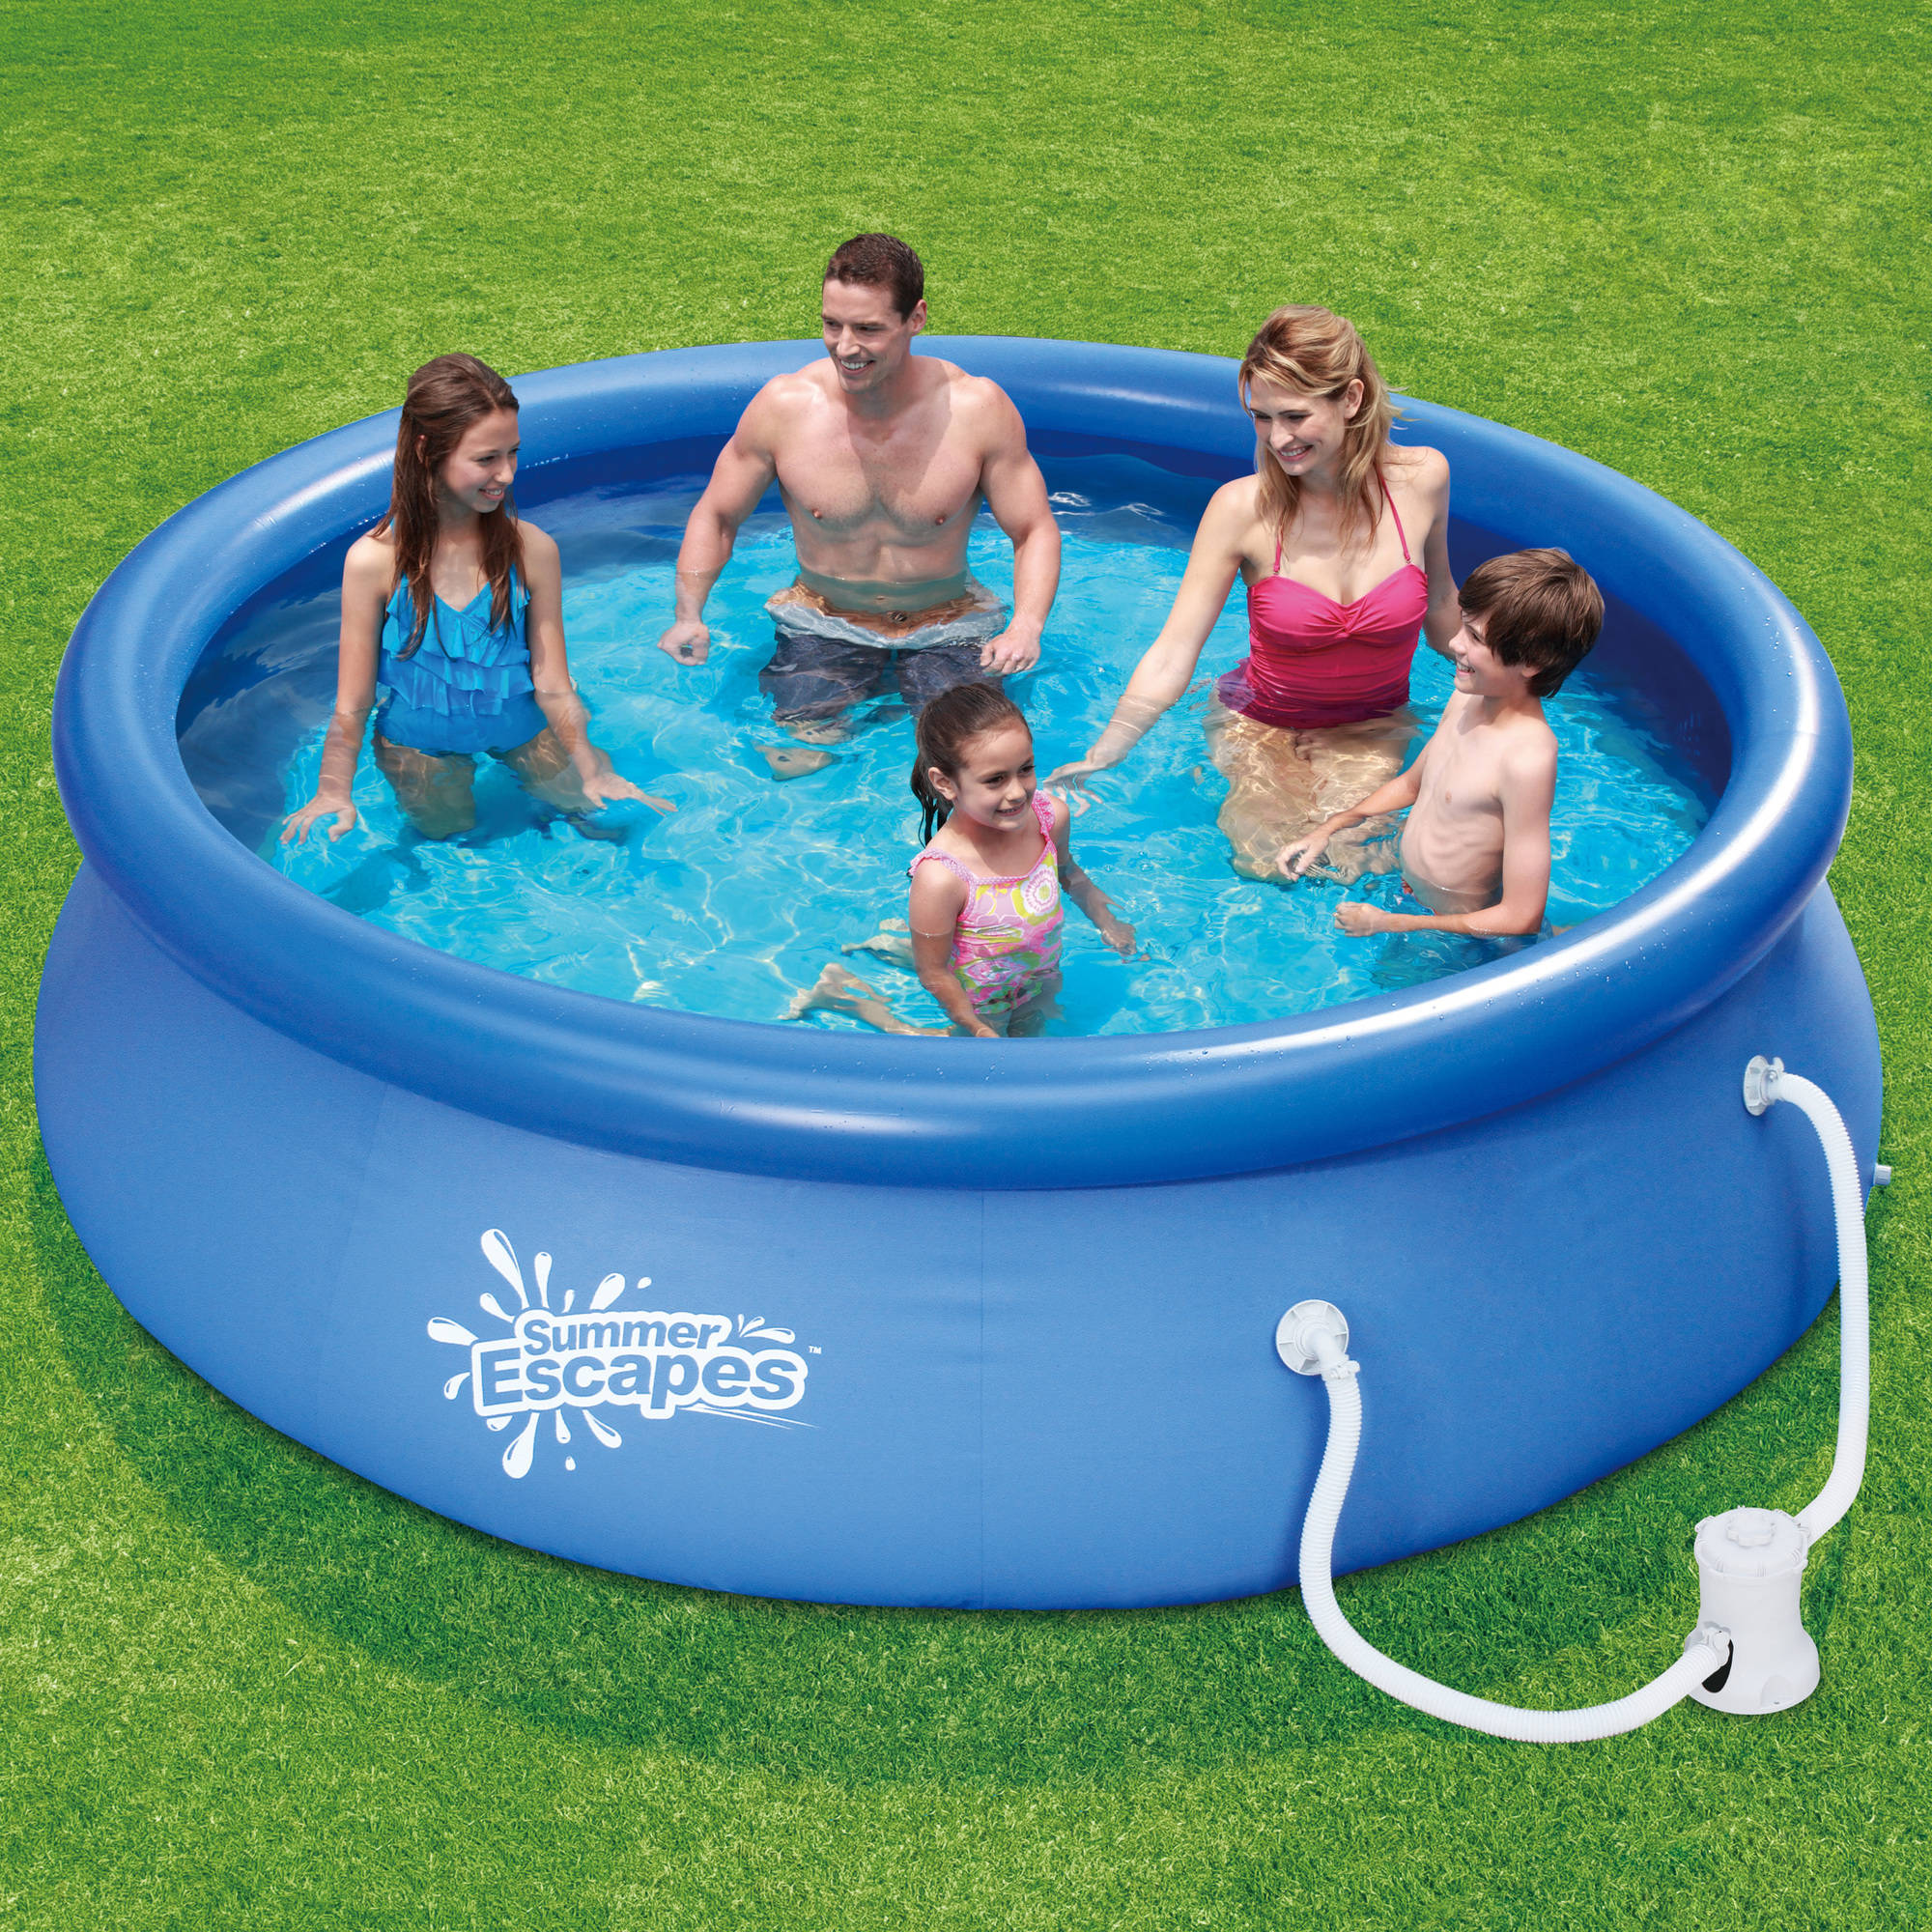 "Summer Escapes 10' x 30"" Quick Set Round Above Ground Swimming Pool with Filter Pump System"